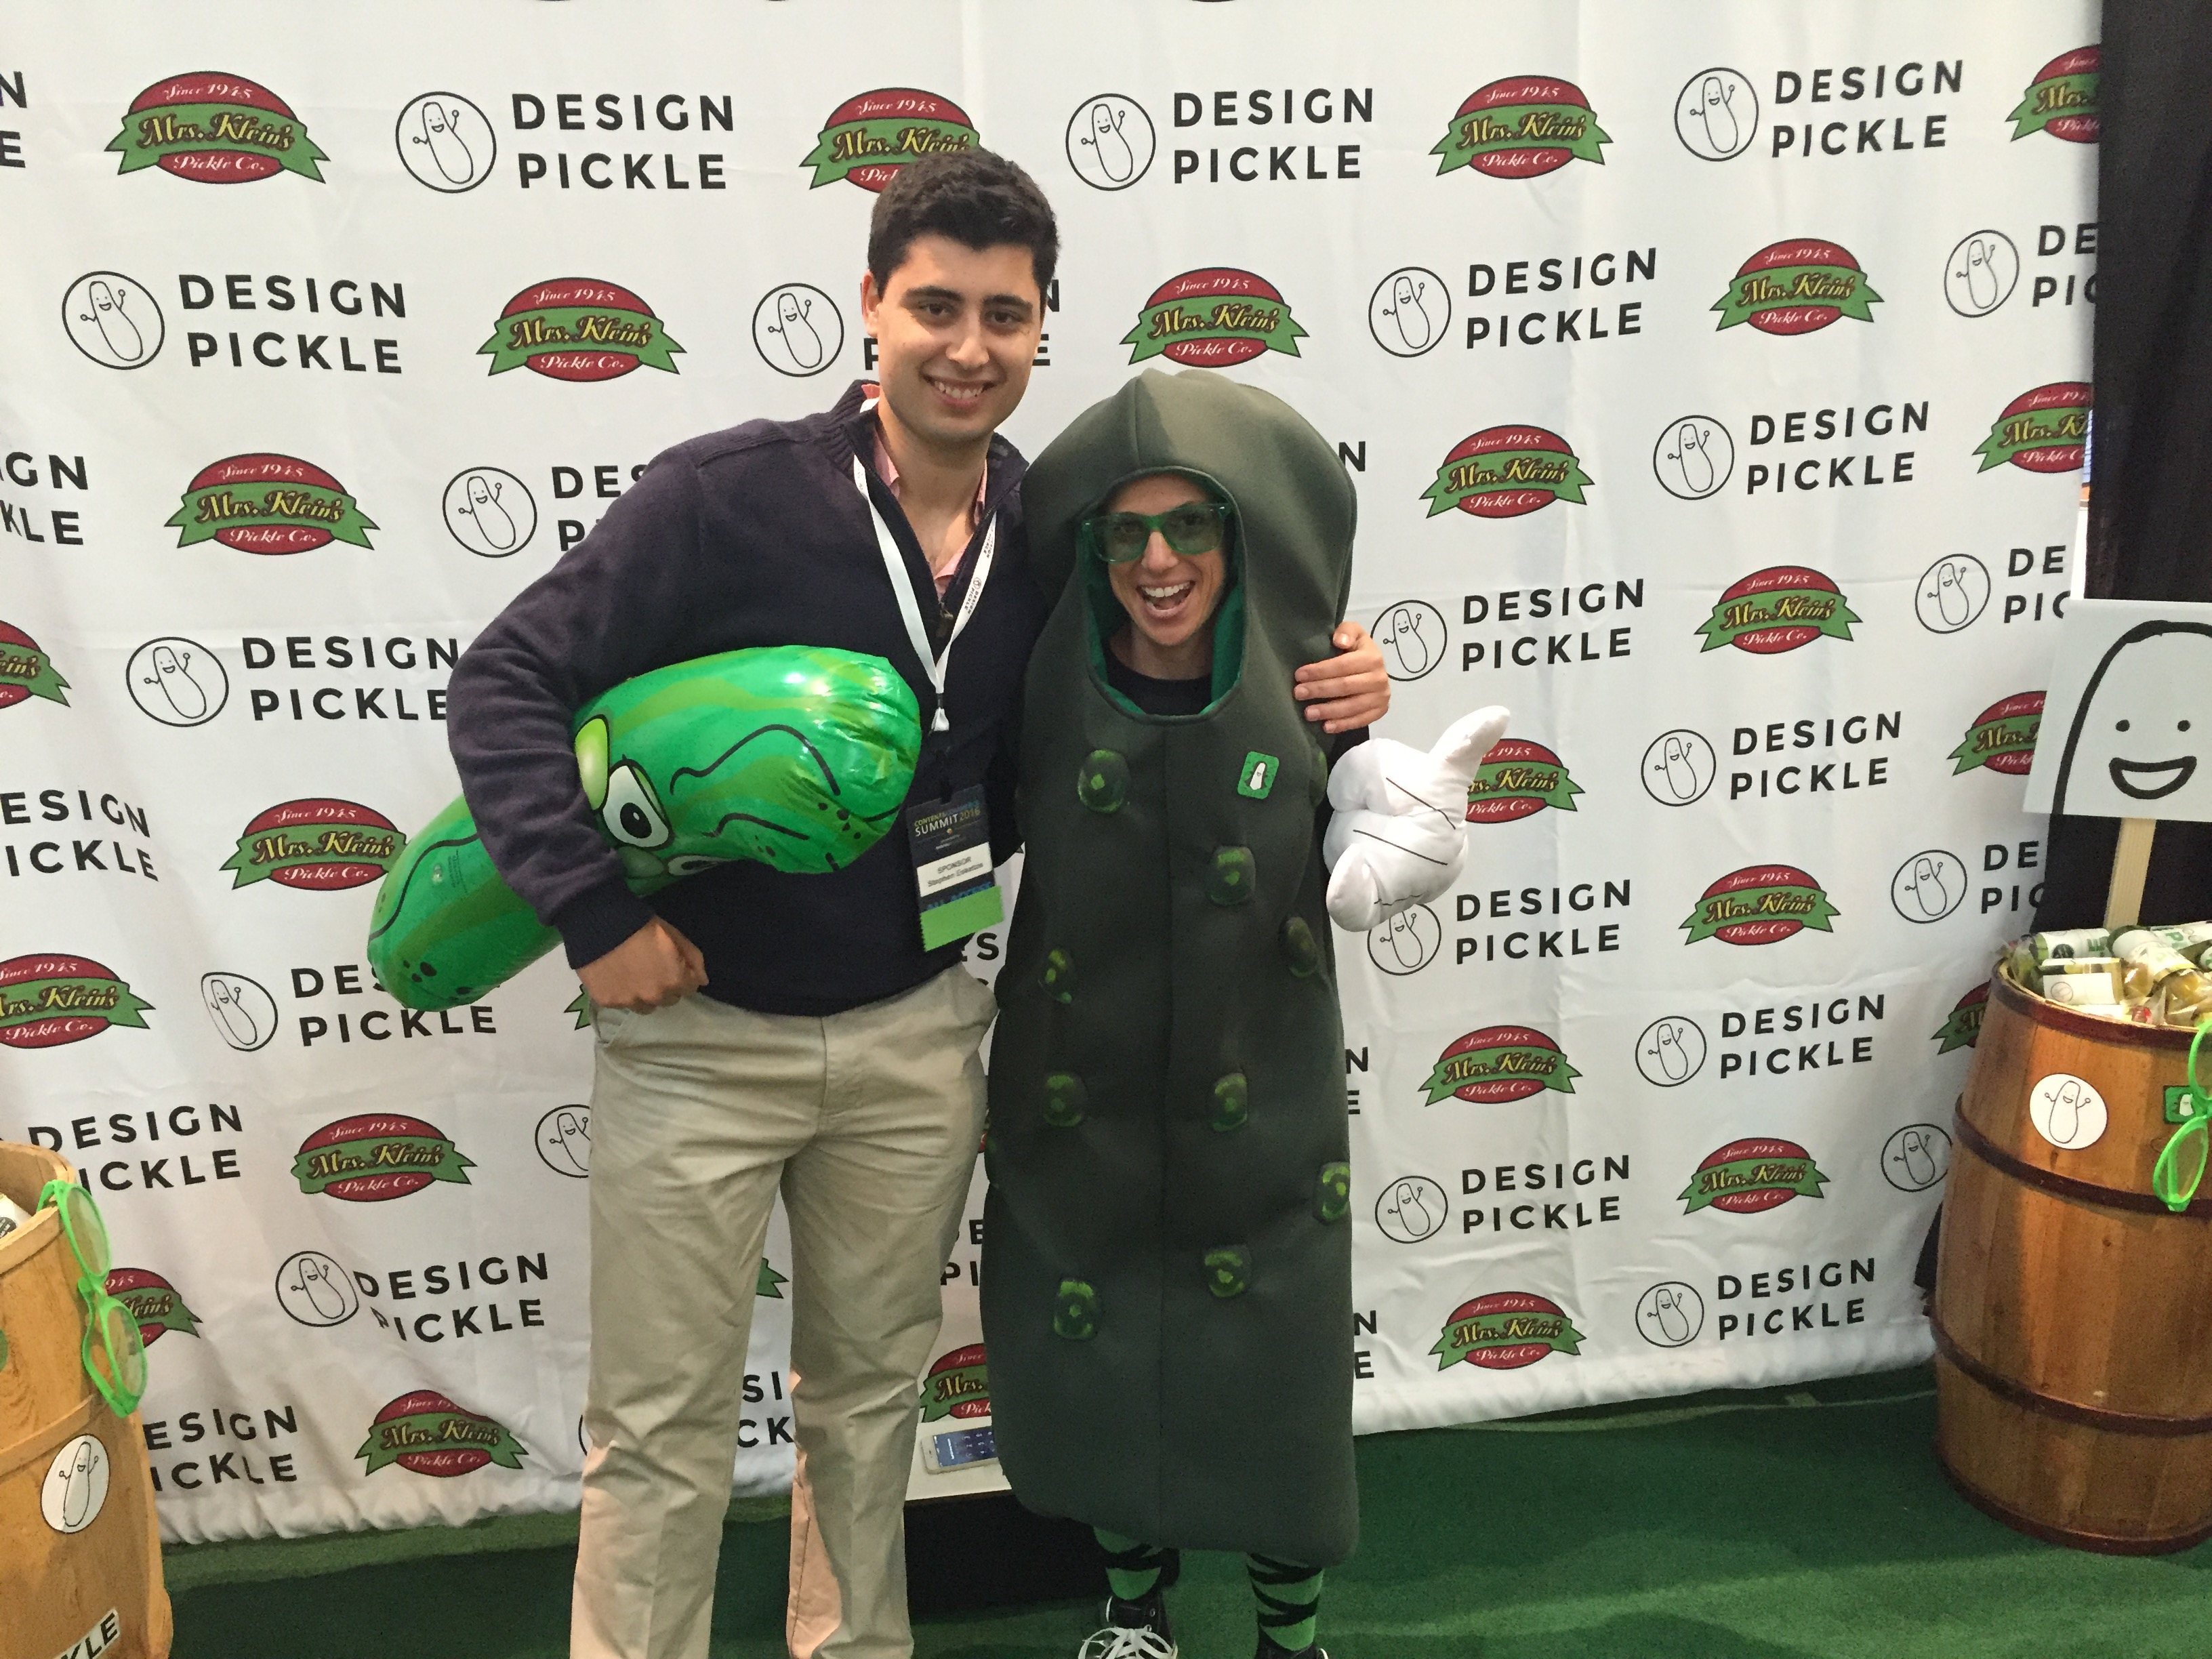 Hanging out at the Design Pickle booth